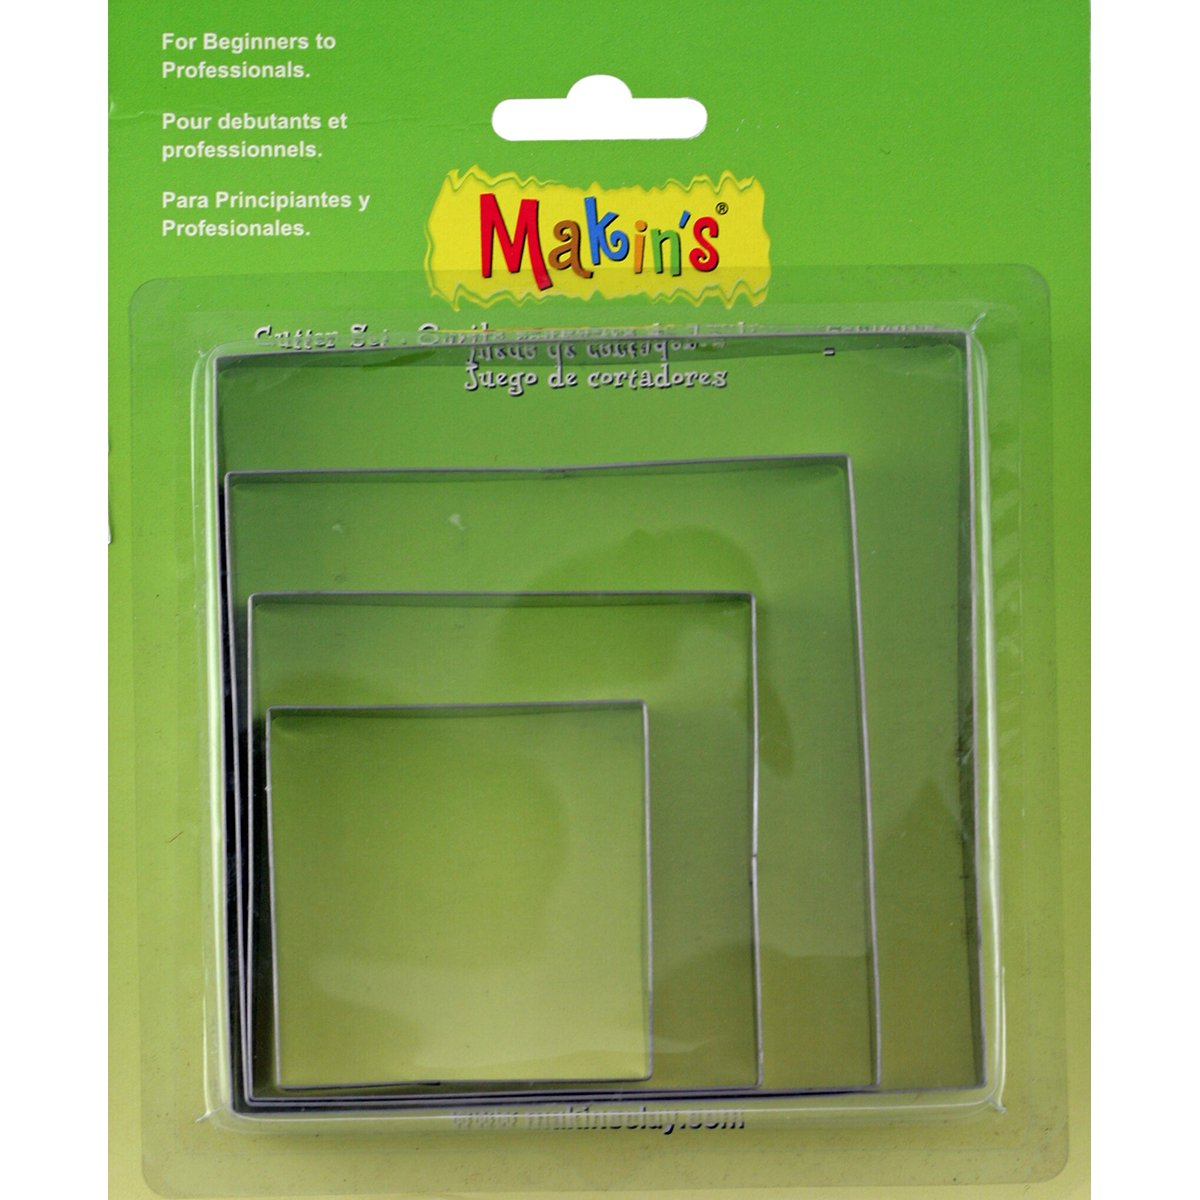 Makin's USA M365-02 Makin's Clay Cutters 4/Pkg-Square Makin' s USA